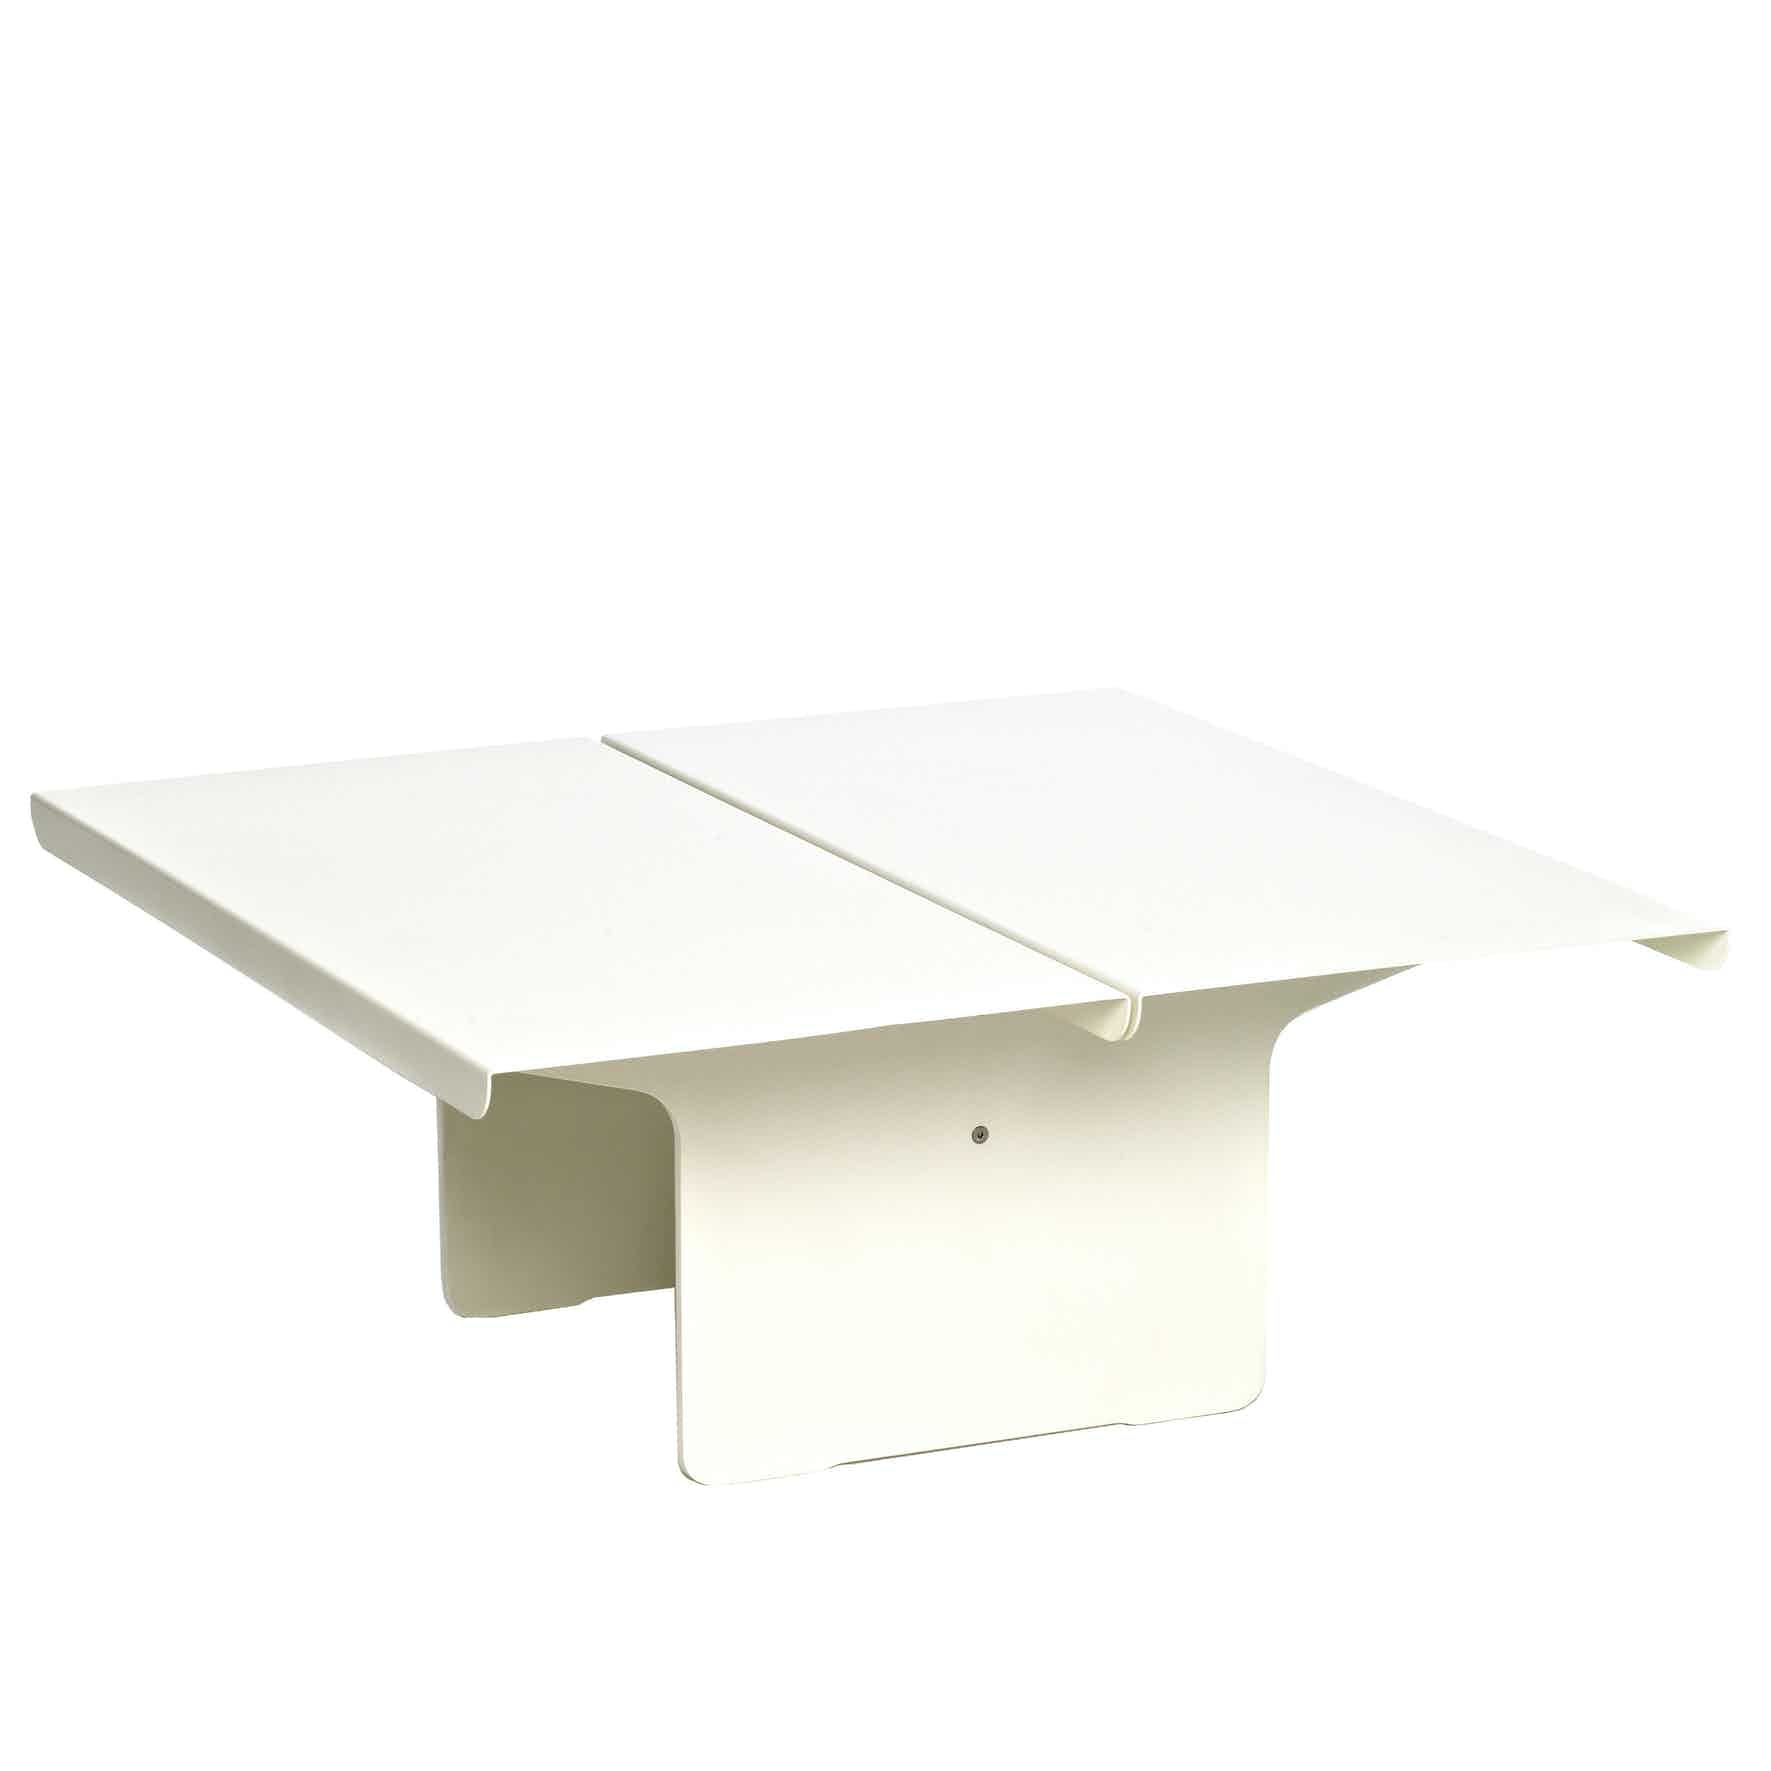 Resident-furniture-flyover-table-square-thumb-haute-living